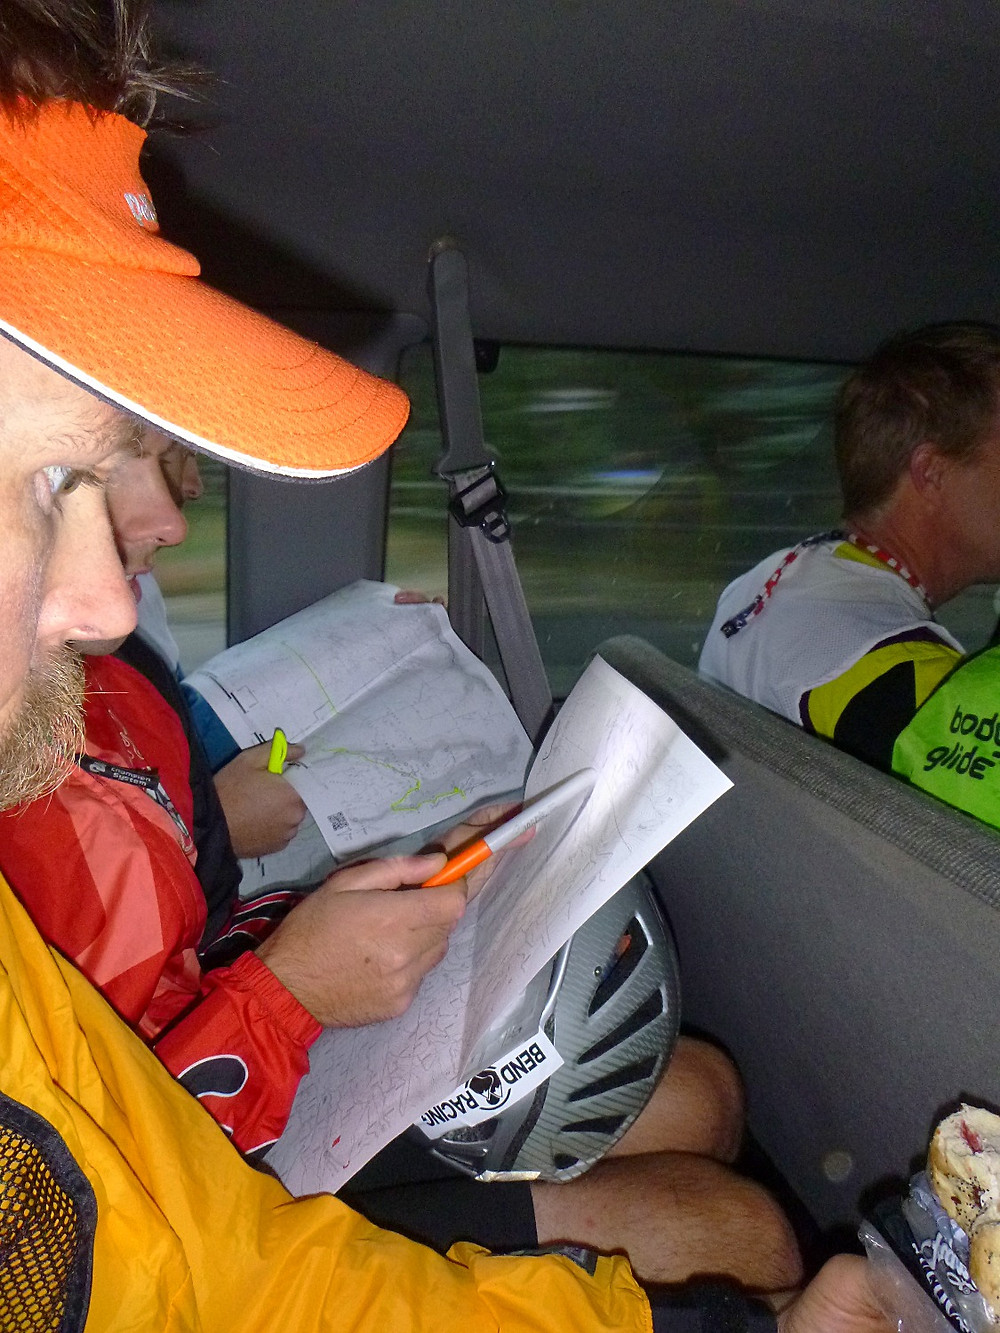 Marking up the maps & eating a little snack on the ride to the race start